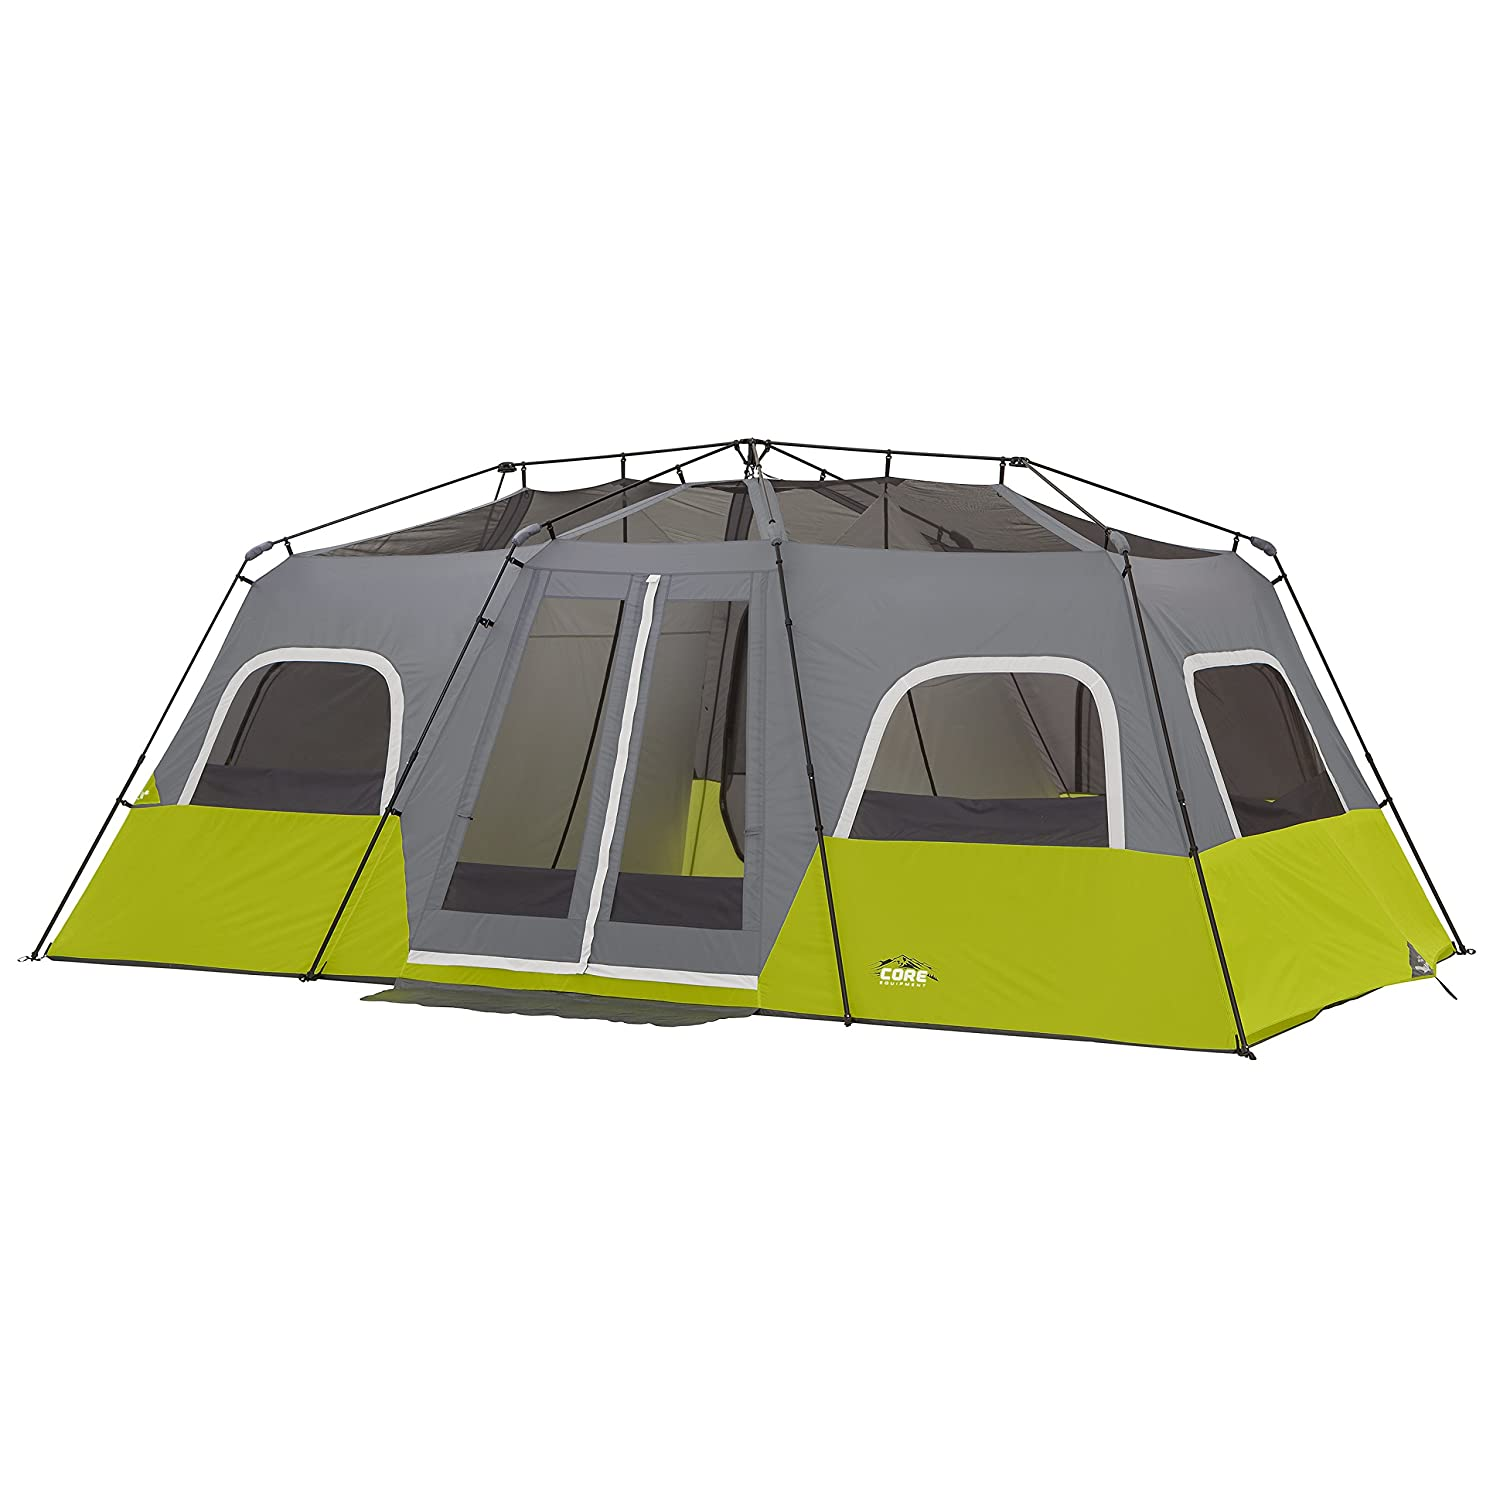 Amazon.com  CORE 12 Person Instant Cabin Tent - 18u0027 x 10u0027  Sports u0026 Outdoors  sc 1 st  Amazon.com : largest instant tent - memphite.com